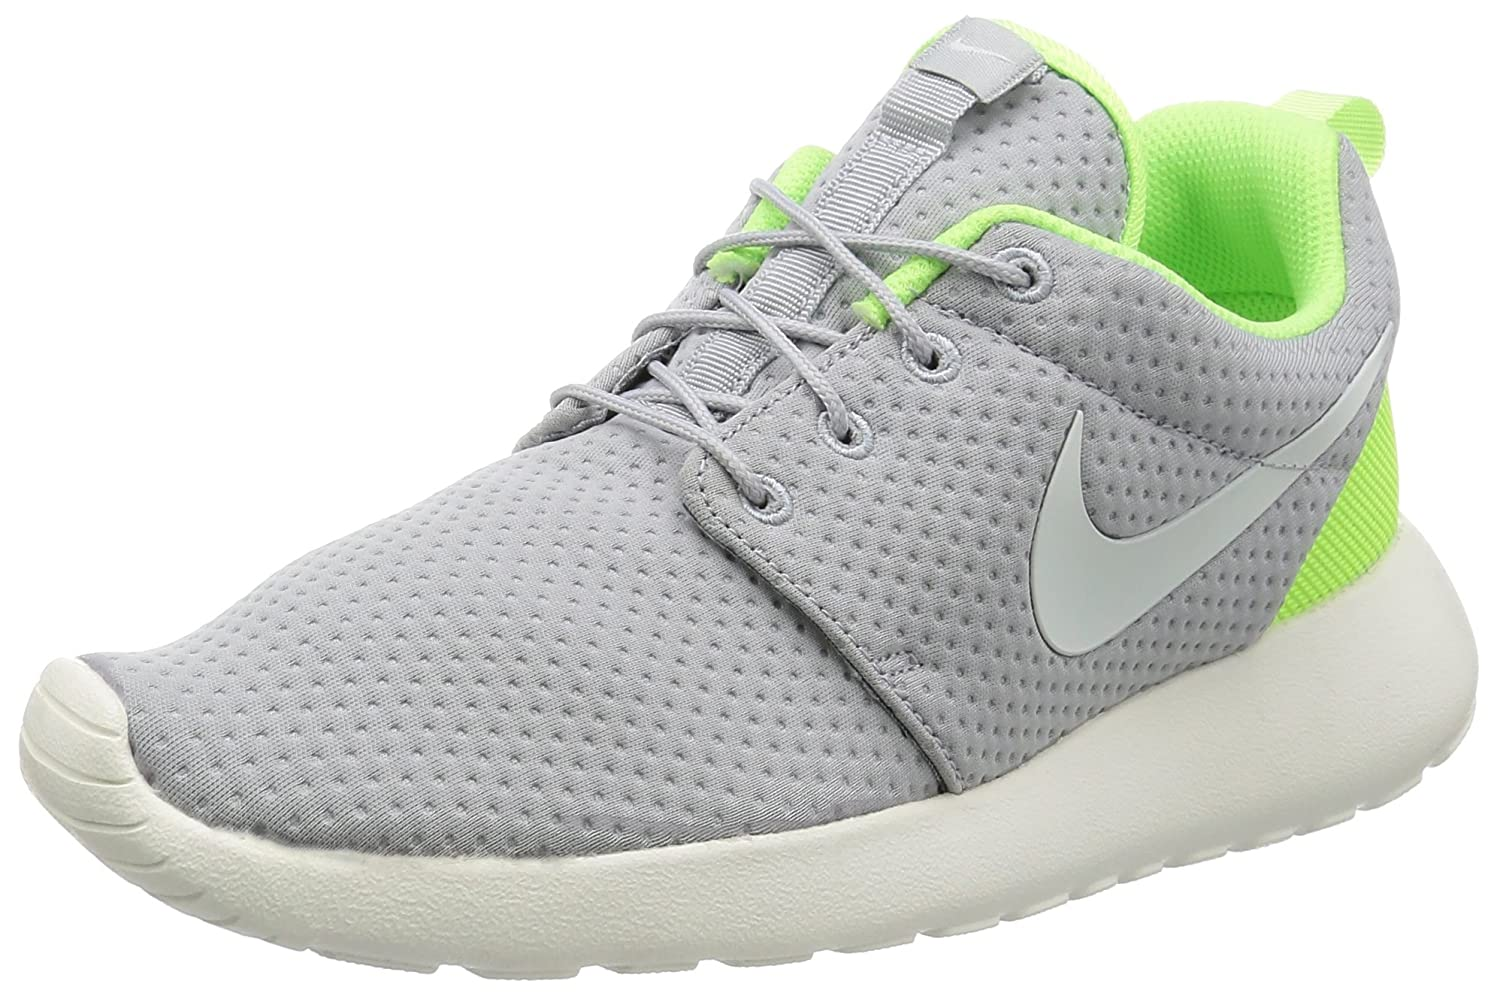 NIKE Men's Roshe Run B01L9188SE 7 D(M) US|Wolf Grey/Sail-ghost Green-sail